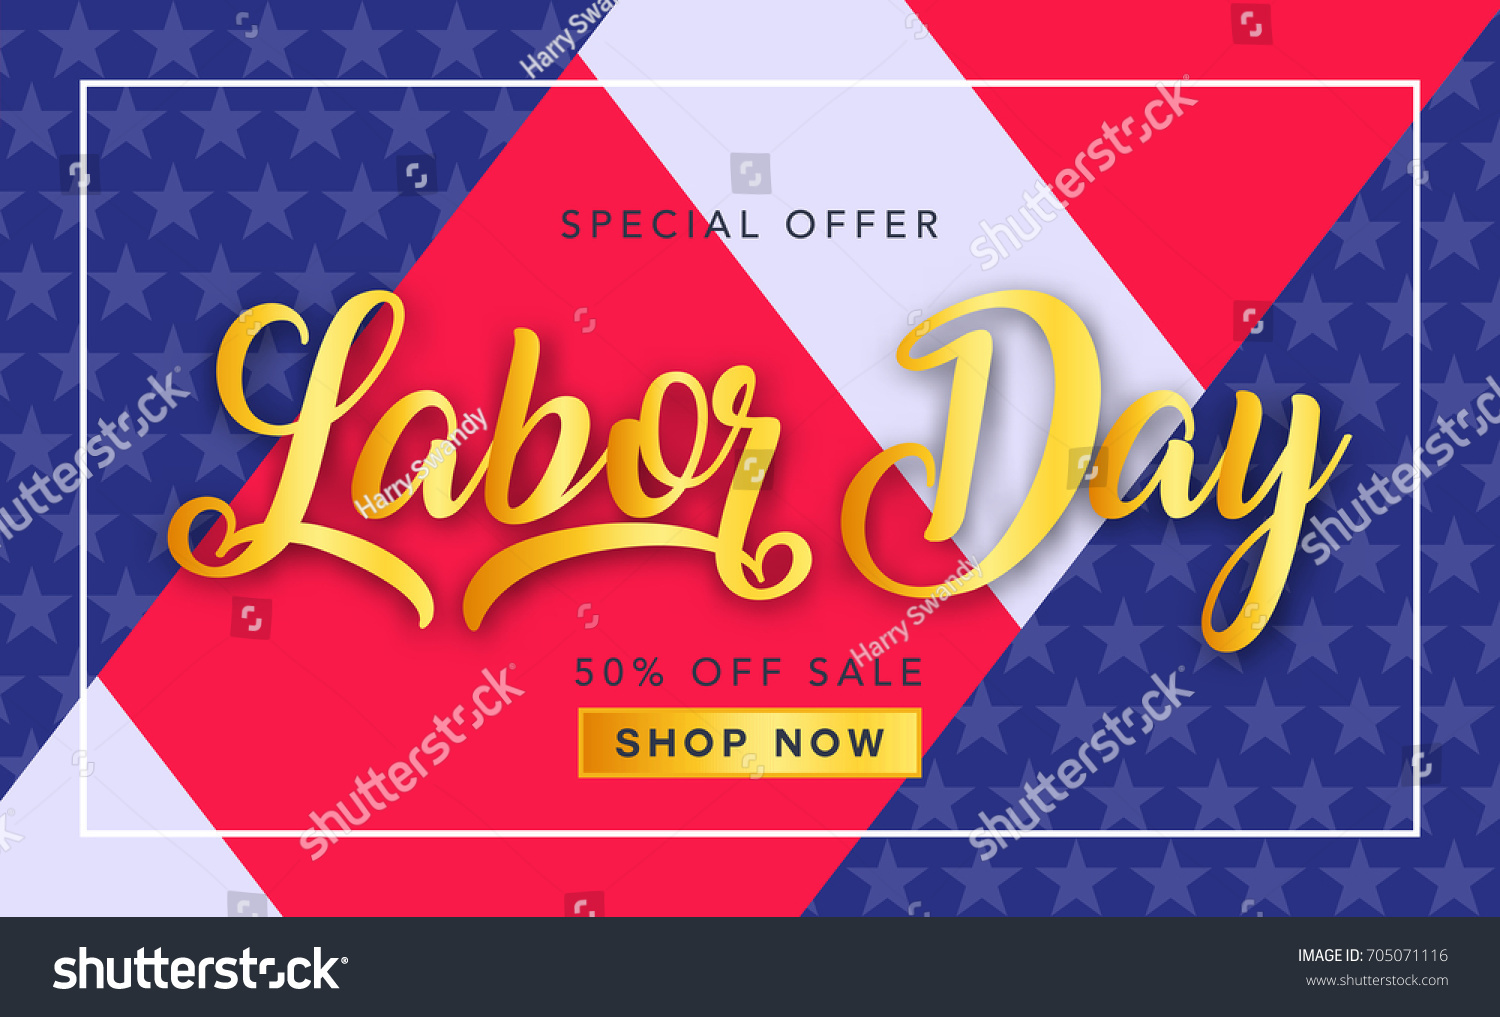 Labor Day Sale Promotion Advertising Banner Stock Vector 705071116